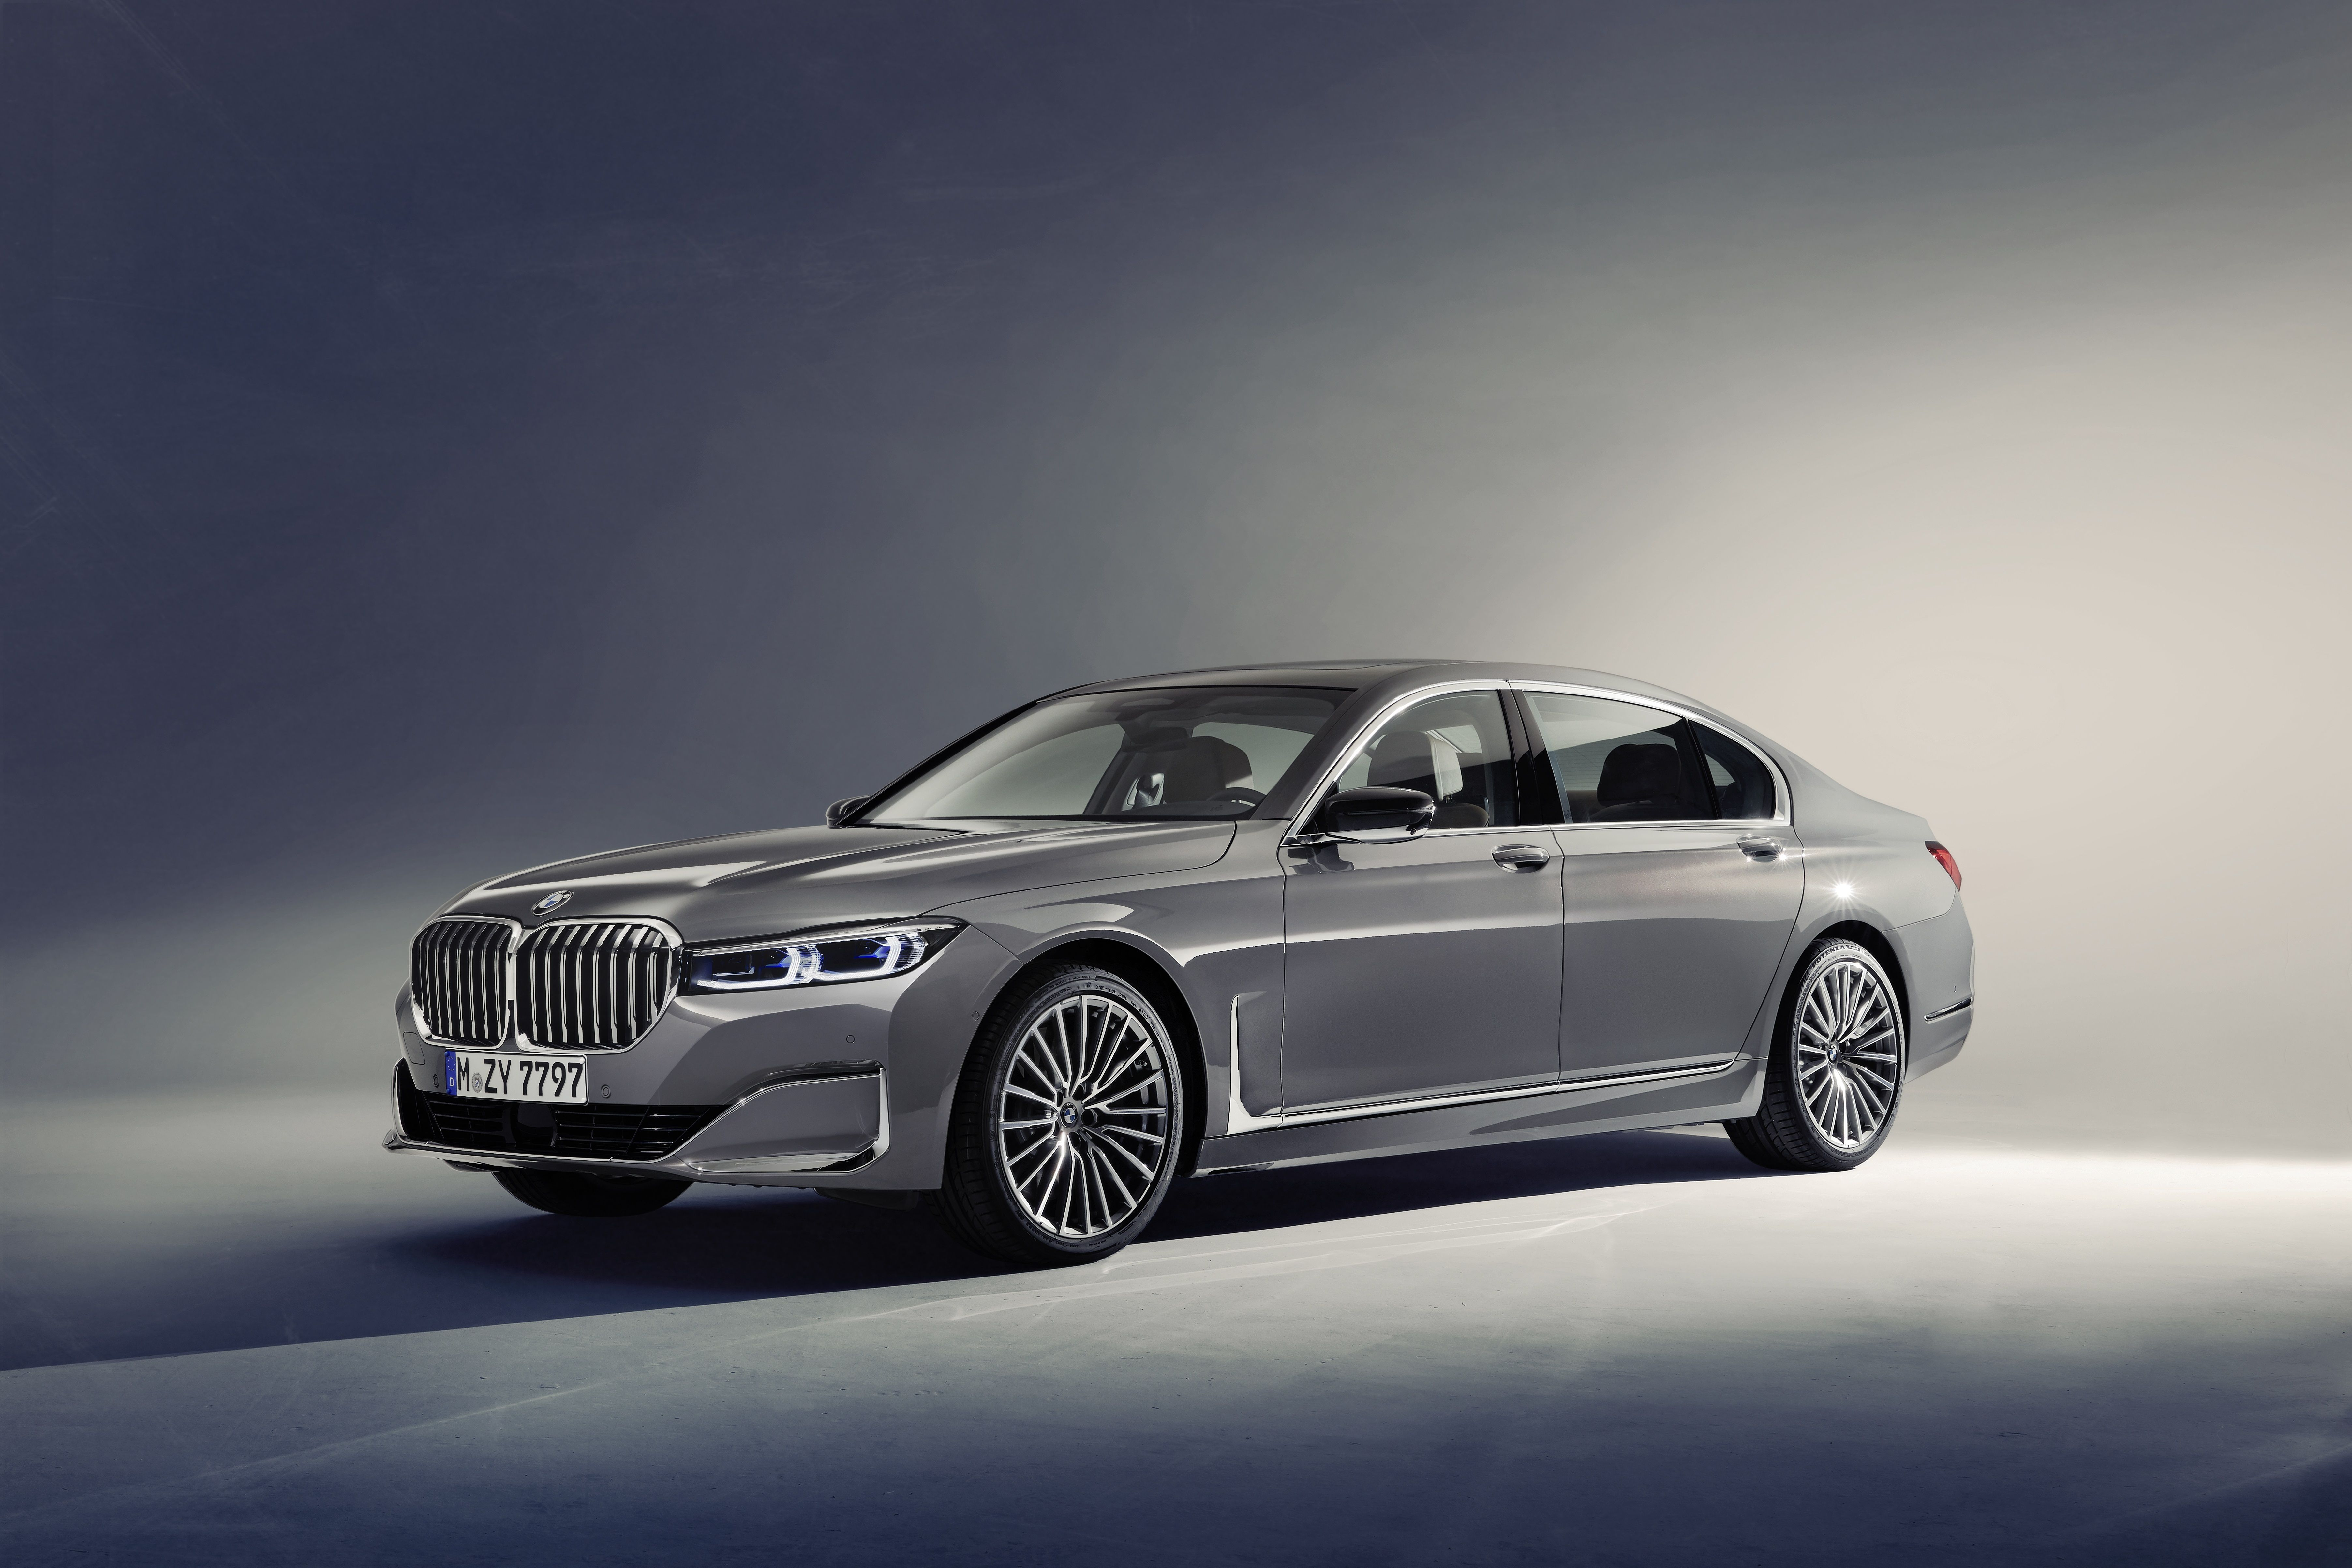 Pin By Hubert On Mercedes S550 With Images Bmw 7 Series Bmw